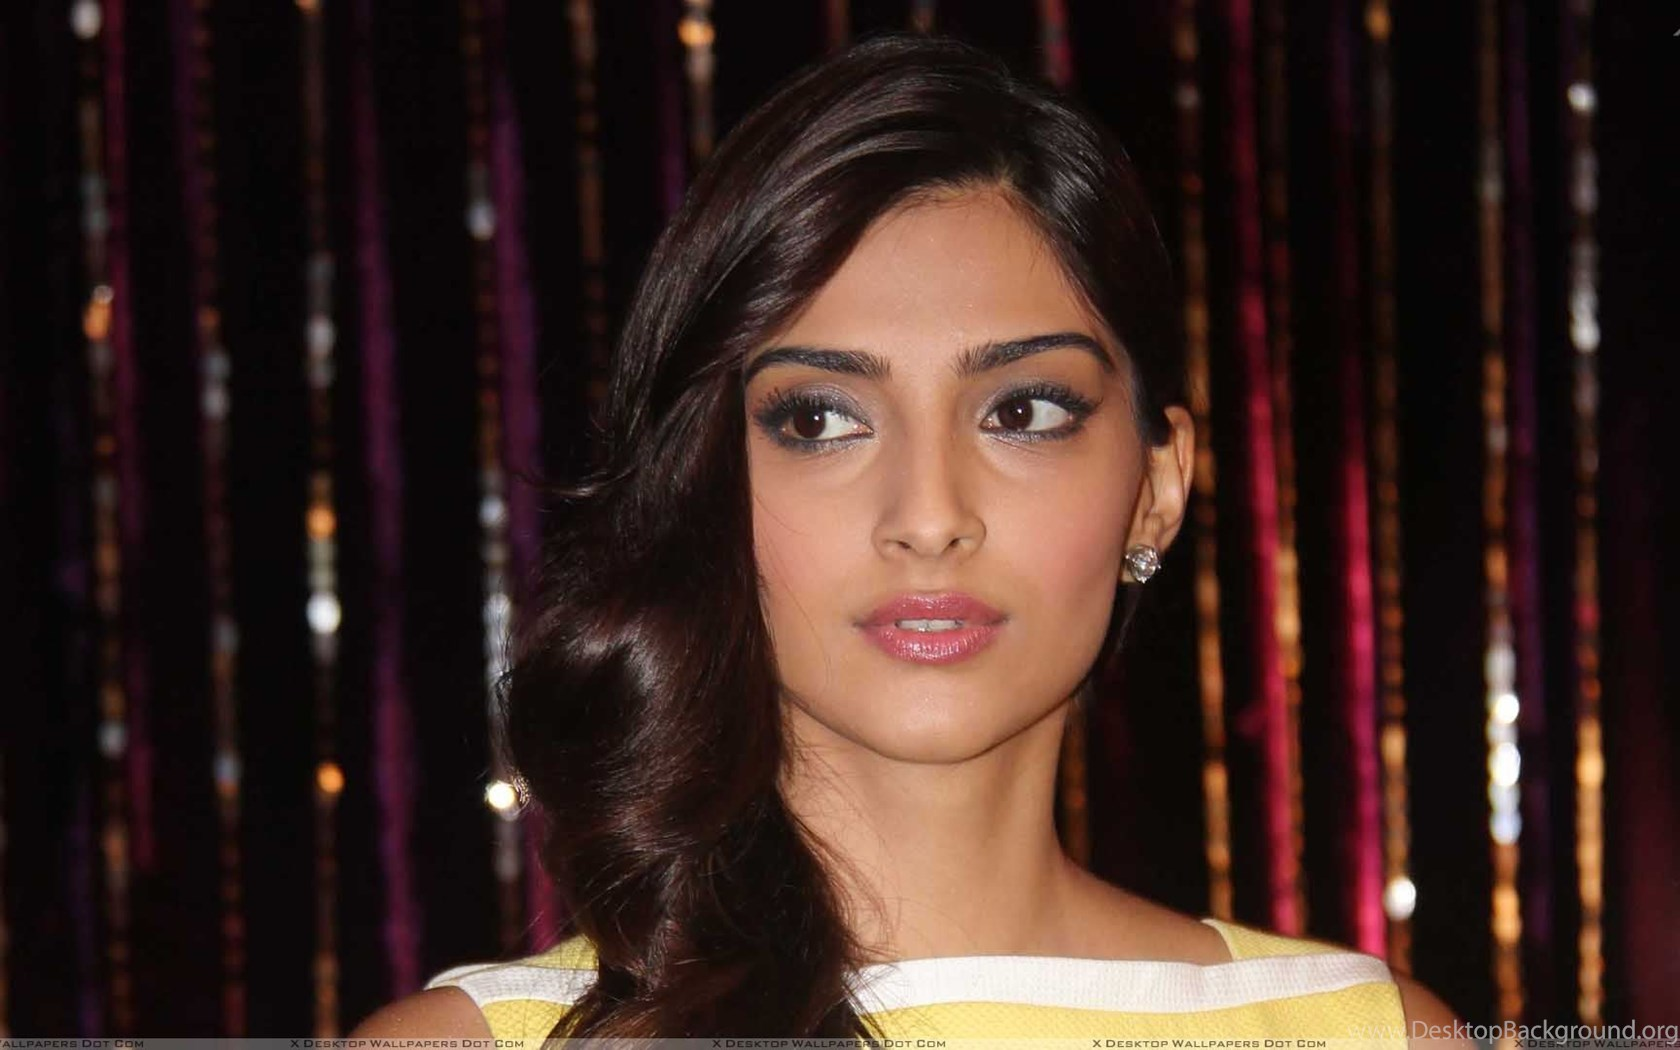 sonam kapoor wallpapers, photos & images in hd desktop background